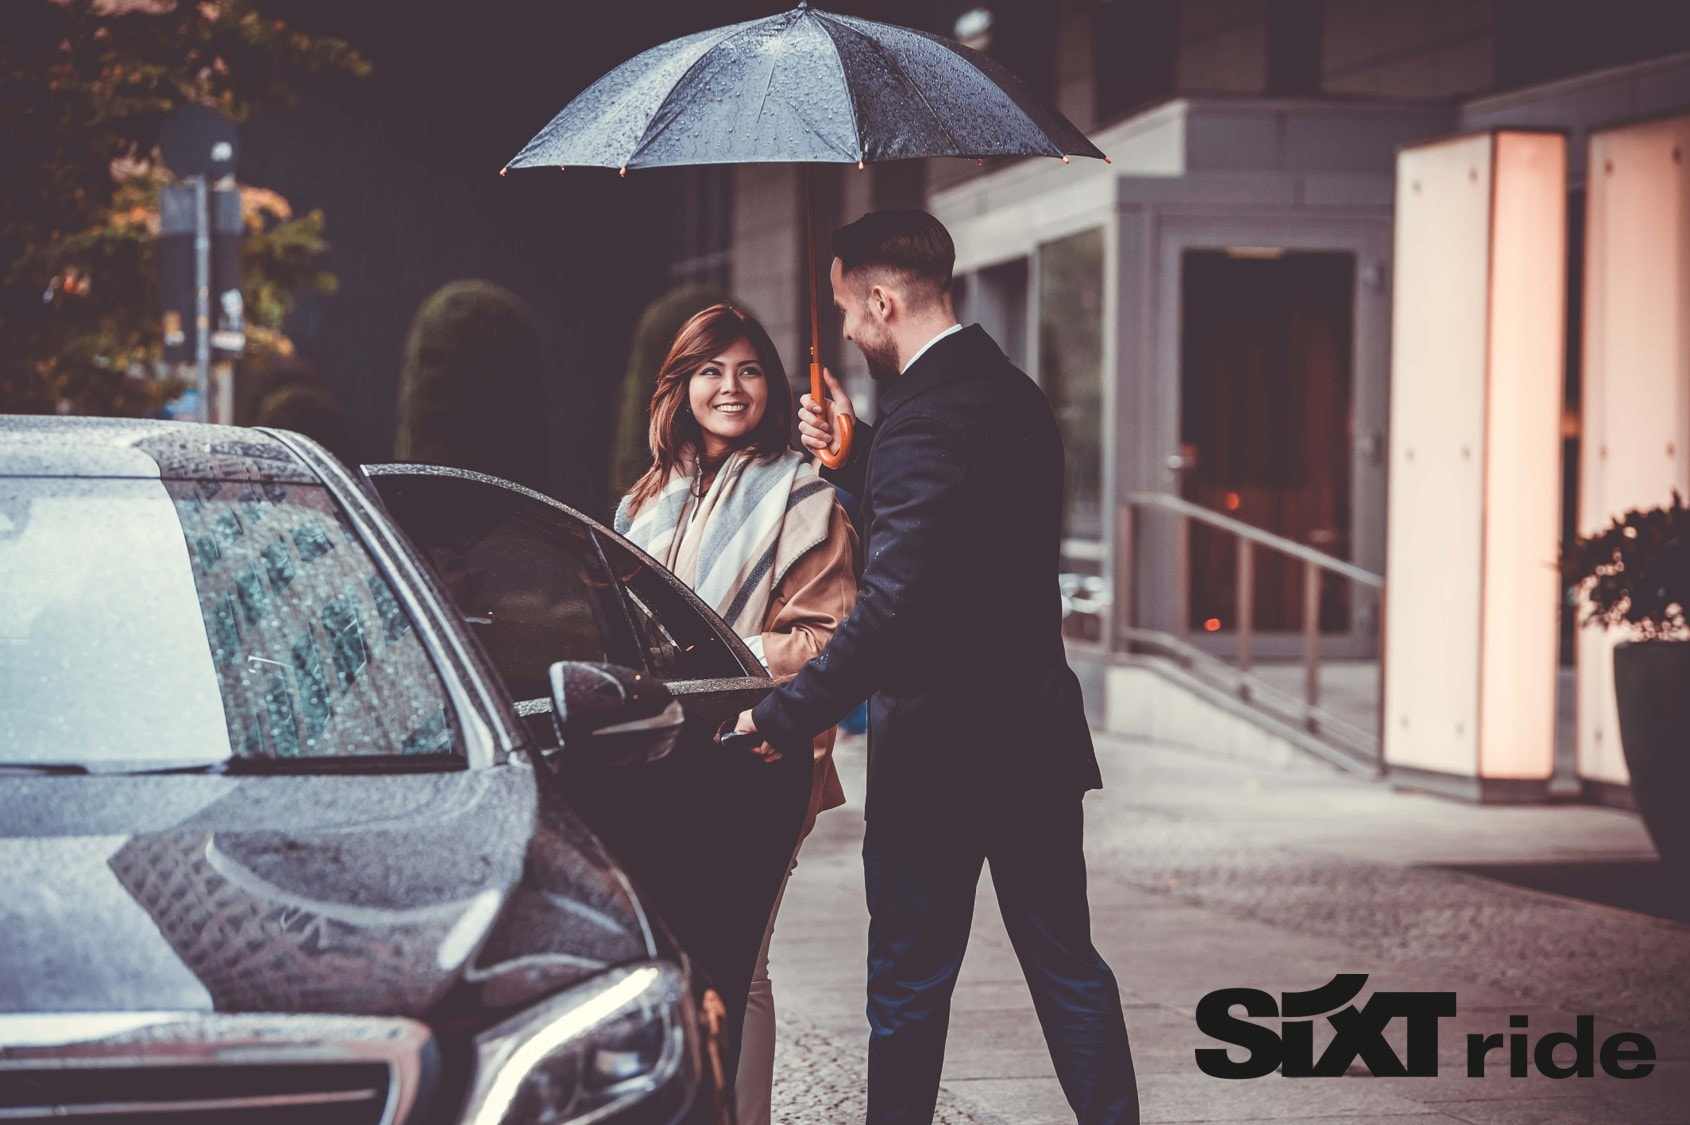 Sixt ride Infopoint min